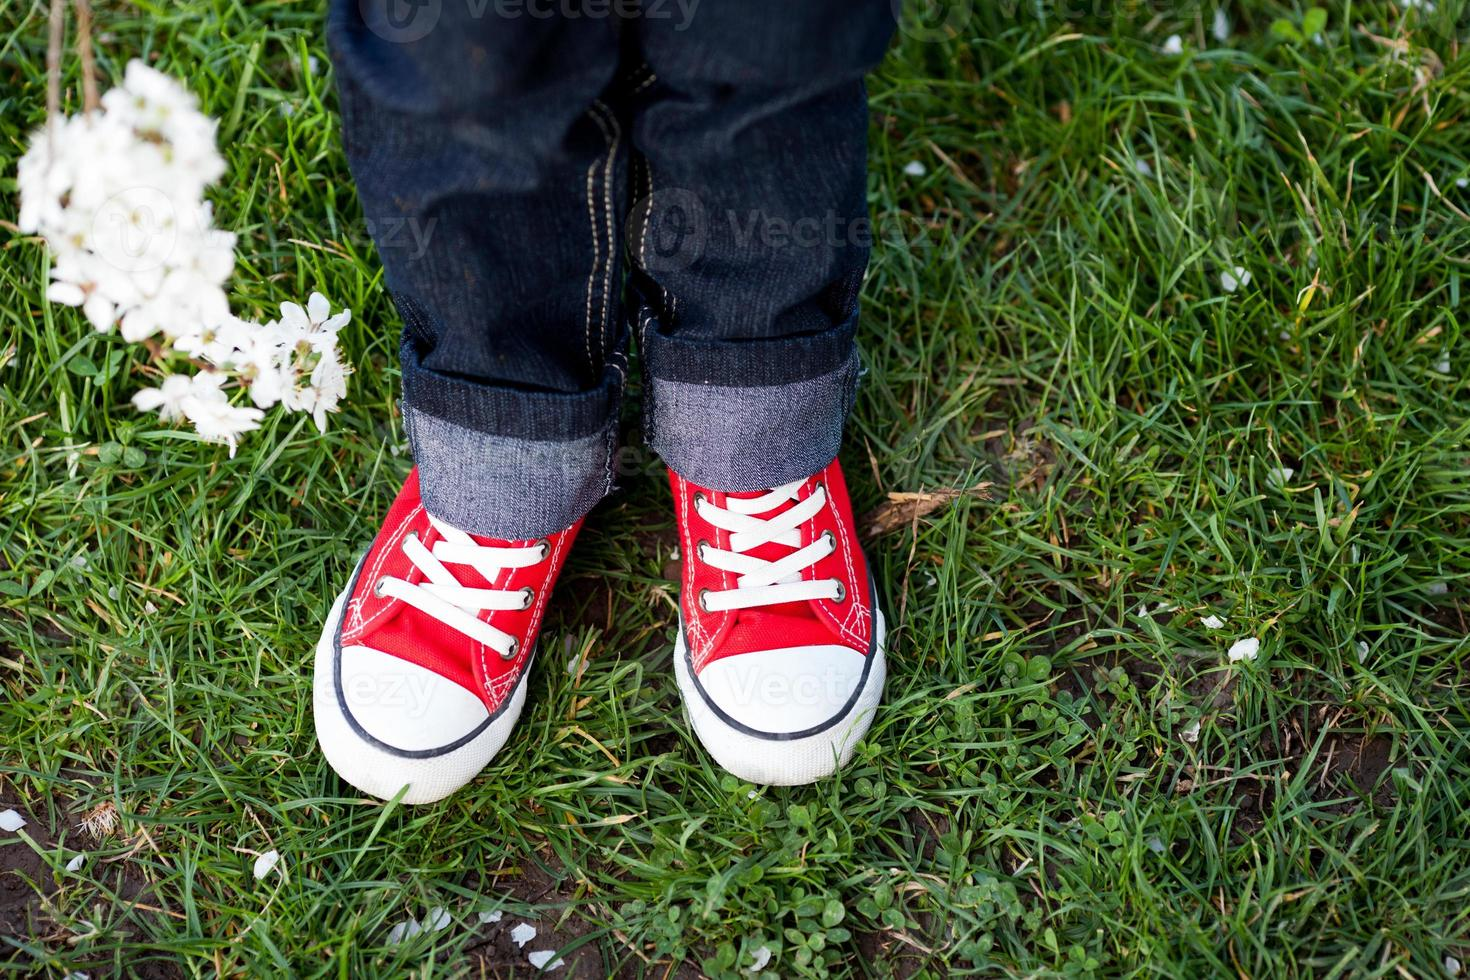 Sneakers on a childs feet photo